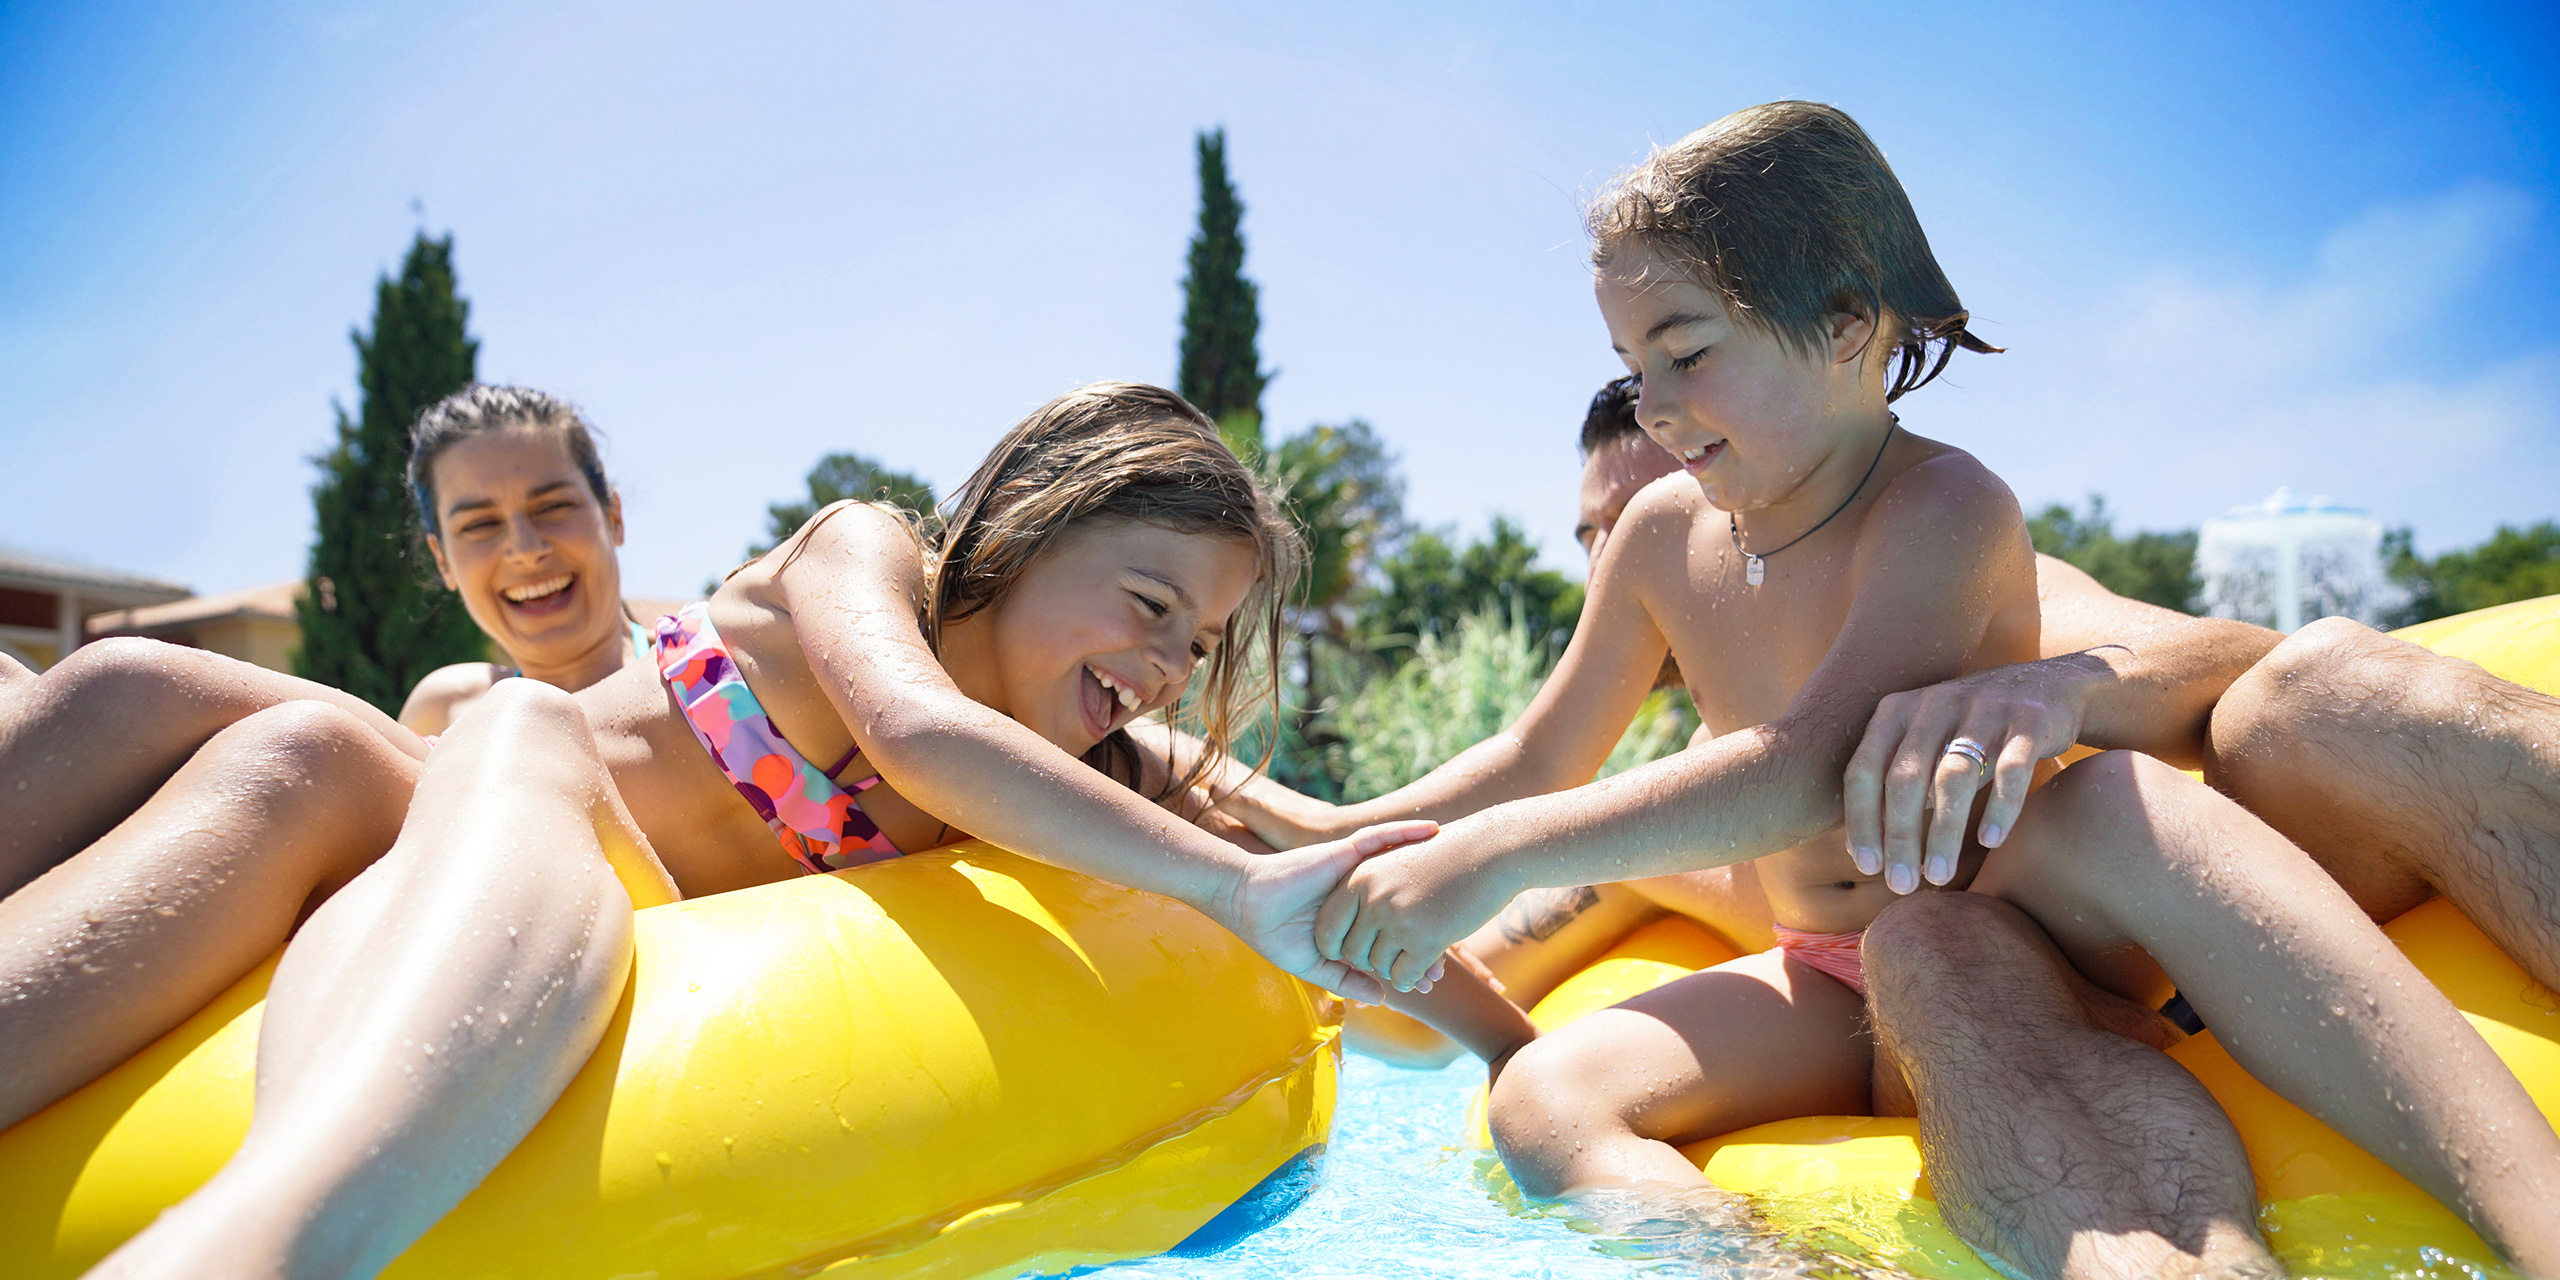 Family having fun riding inflatable ring at the pool; Courtesy of goodluz/Shutterstock